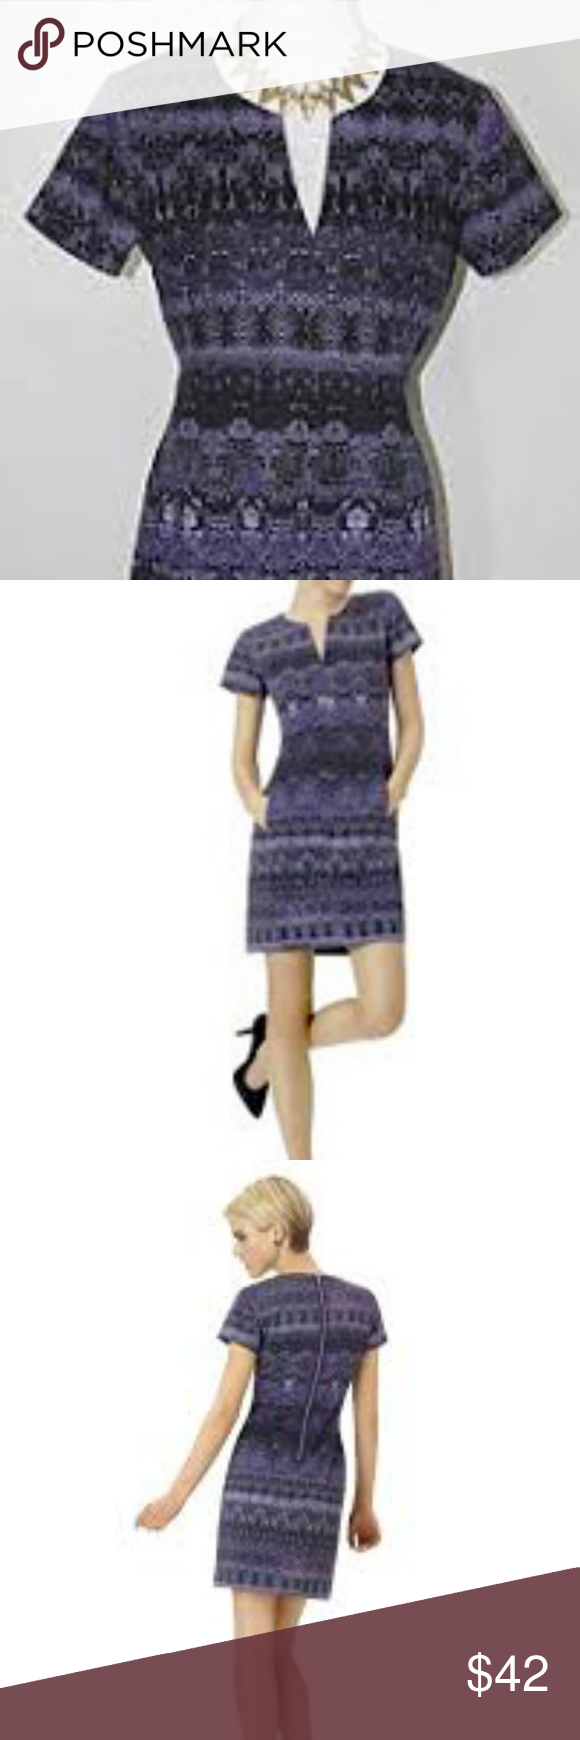 Purple Reptile Snake Short Sleeve Dress V Neck New with